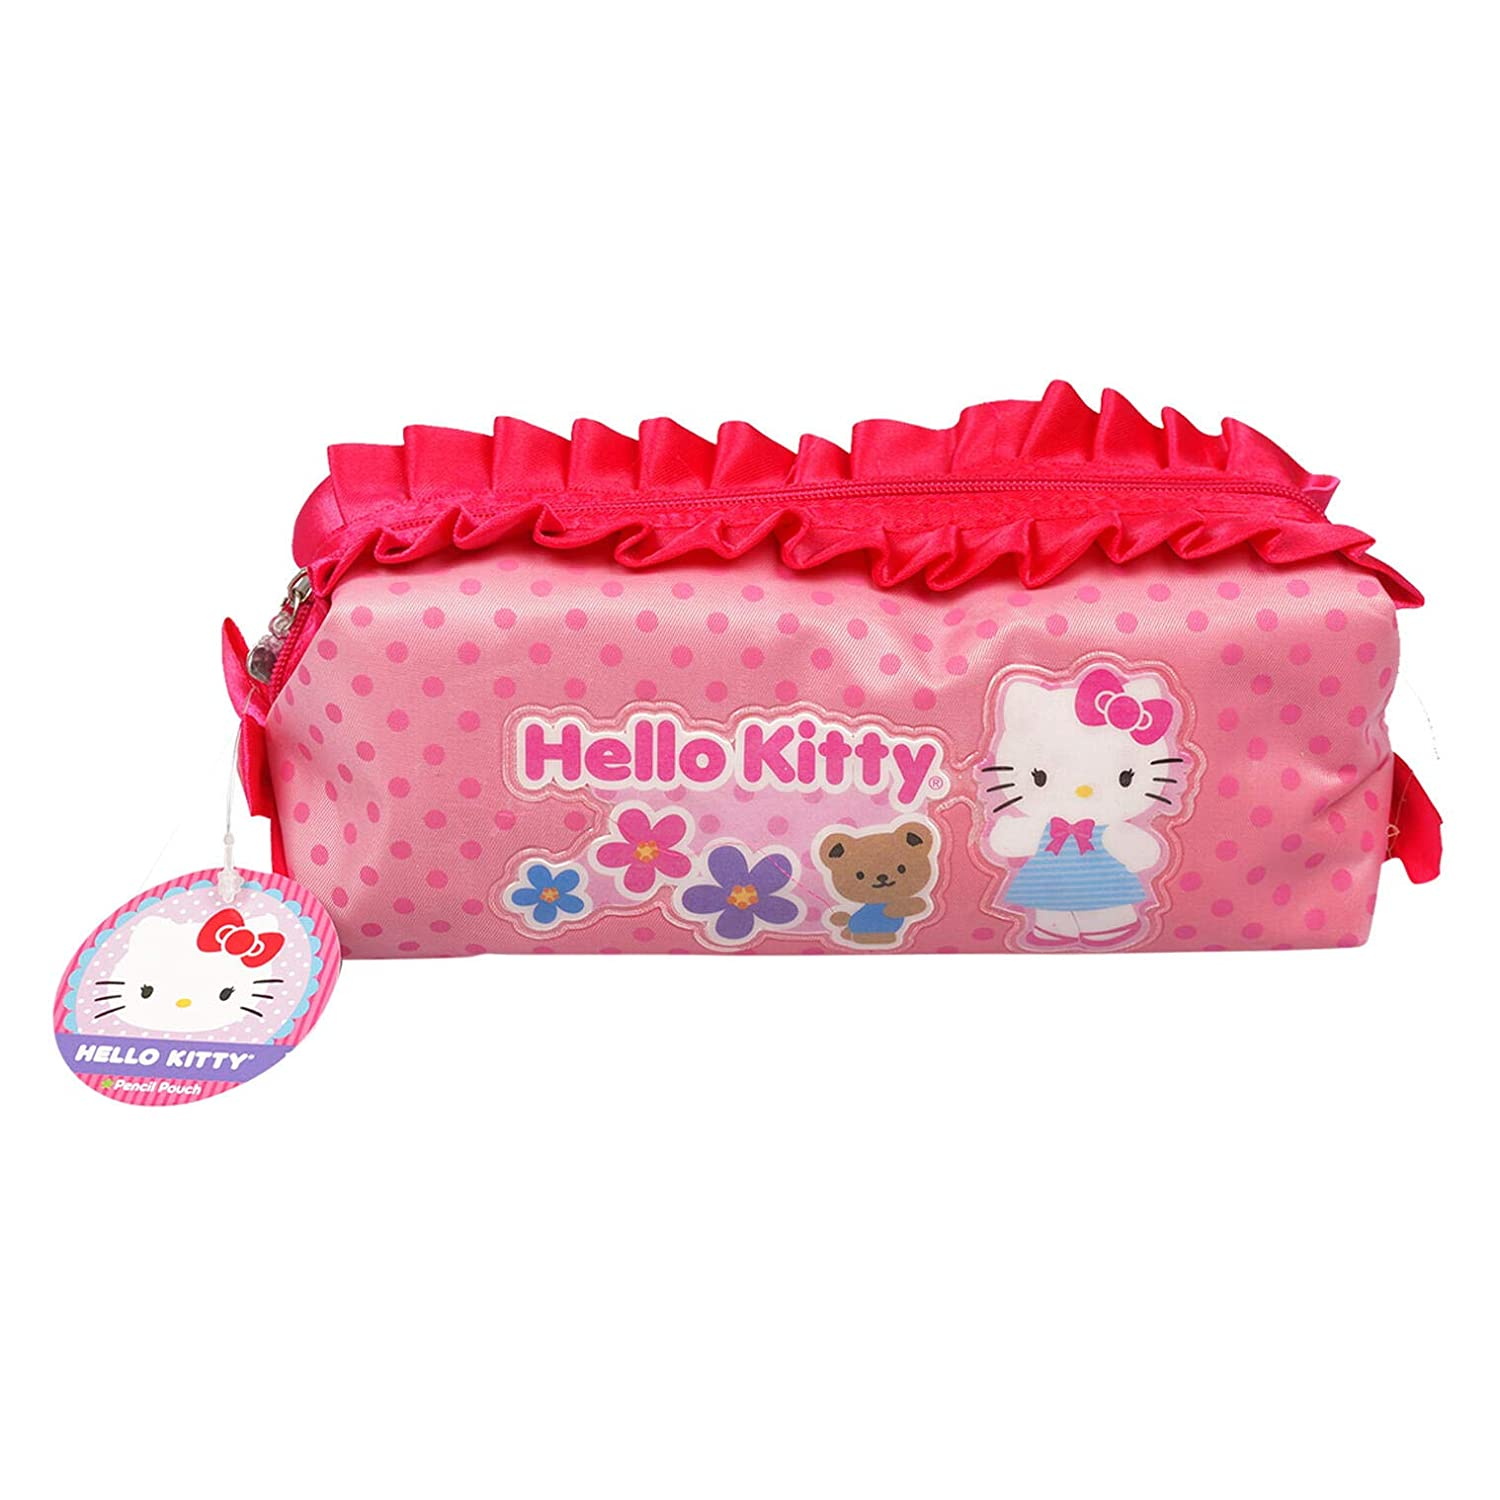 Hello Kitty Cosmetic Makeup Bag for Travel Brushes and Accessories, Great for Storing a Variety of Art, Pens, Pencils and Other Small Things